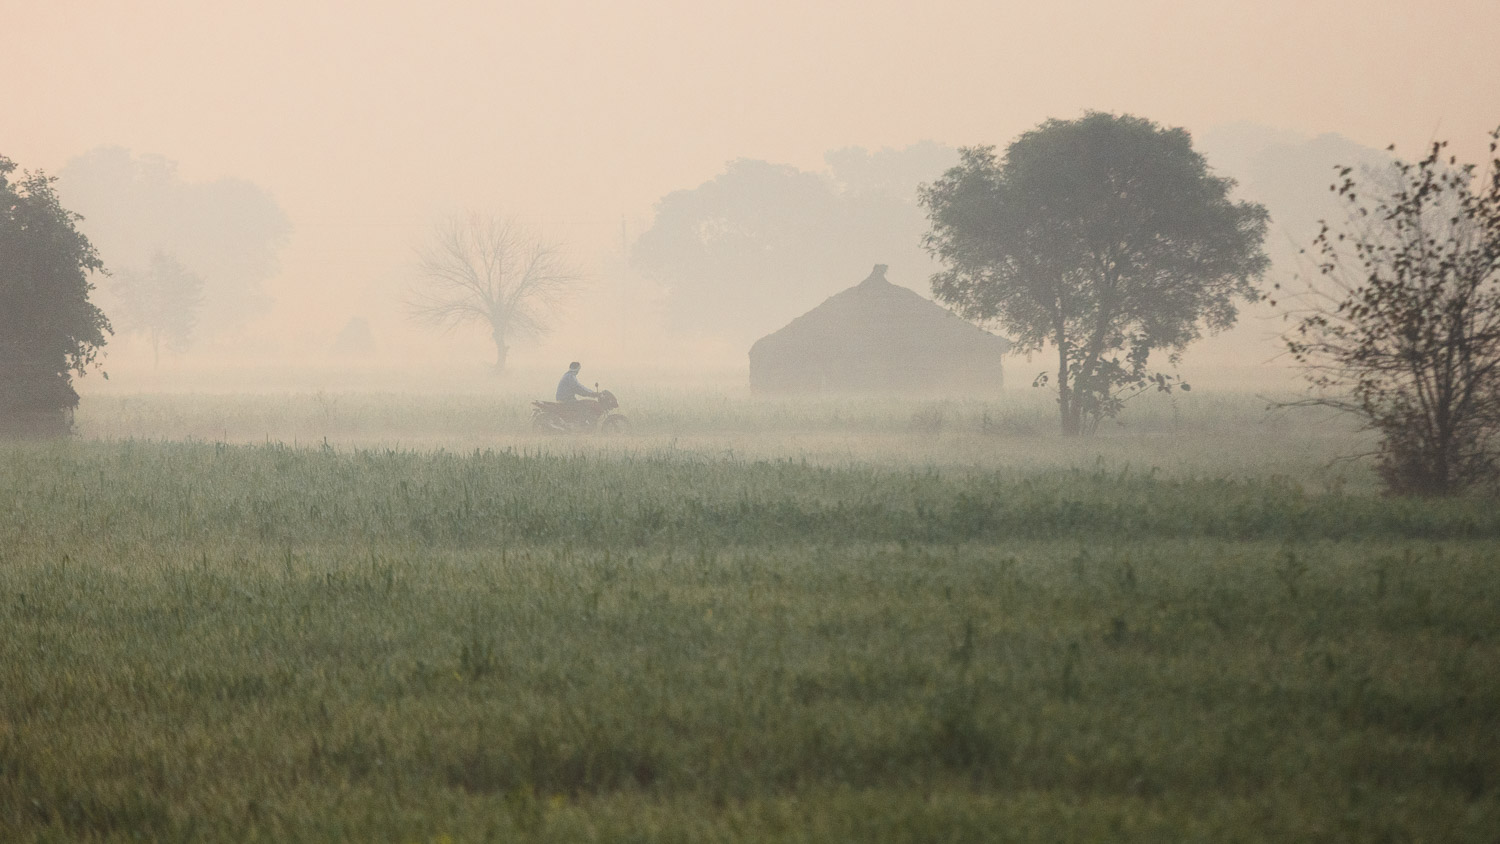 A motorbike drives through morning haze in the countryside of Uttar Pradesh, India